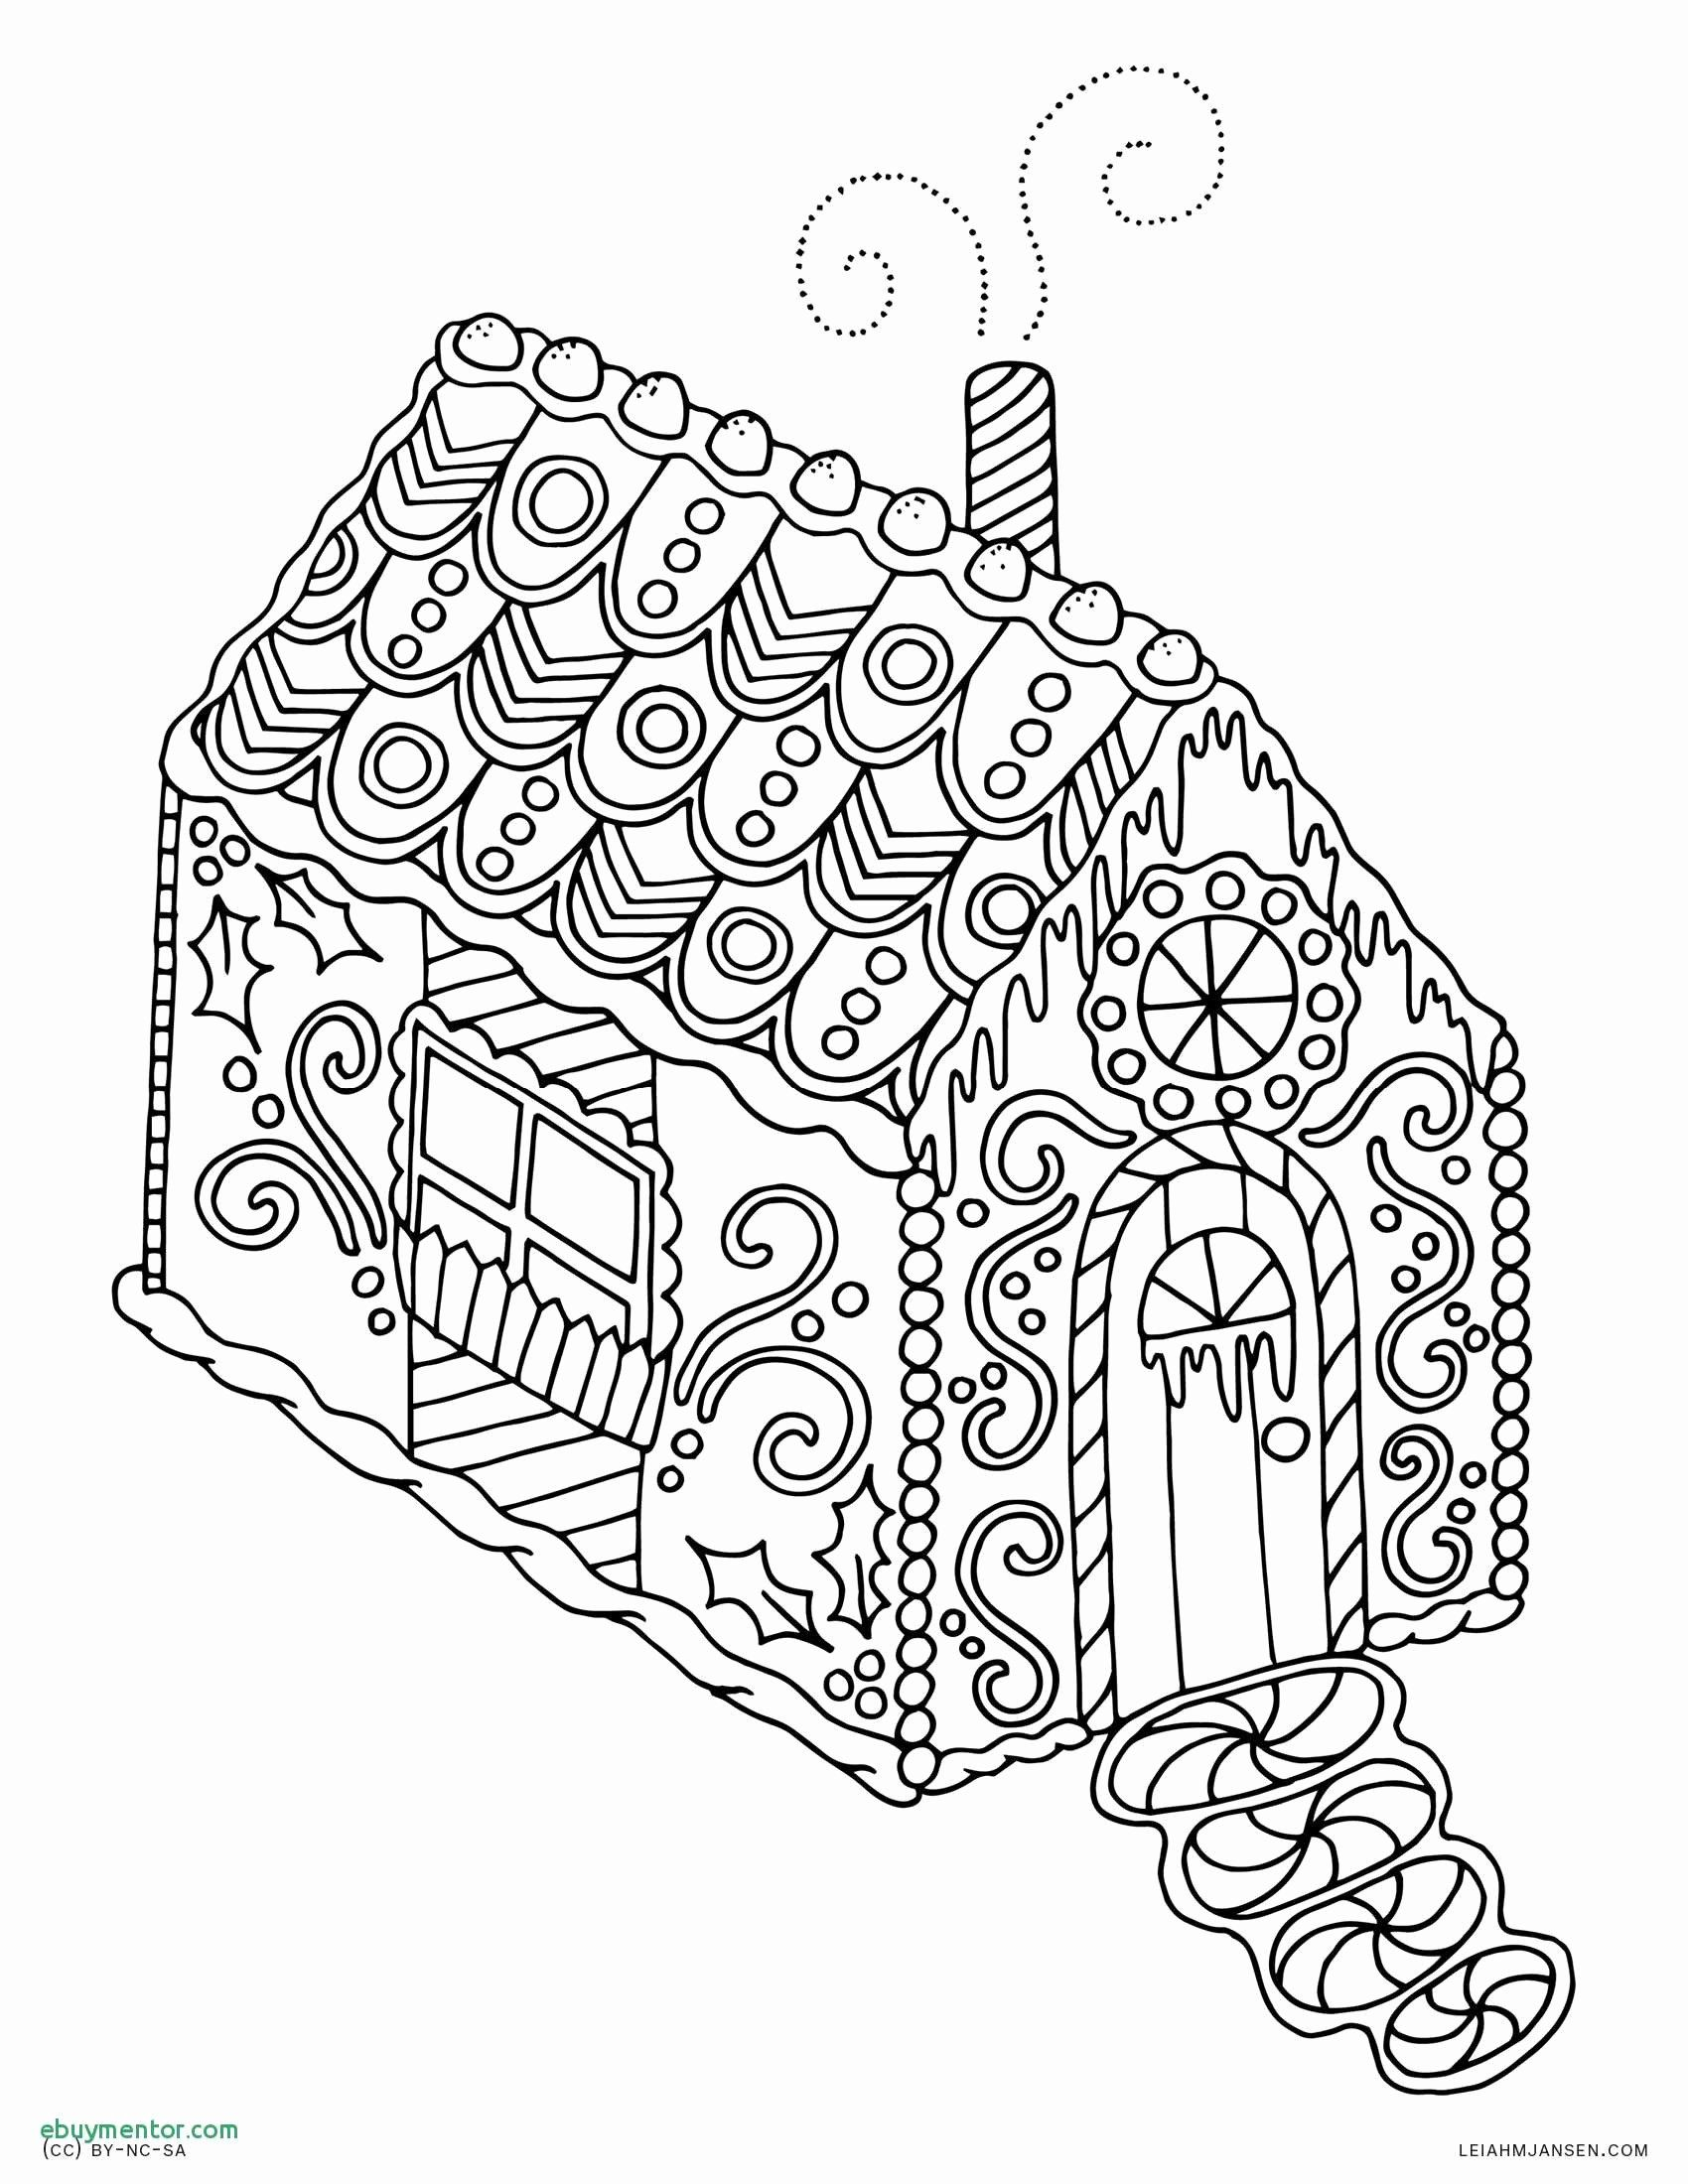 Tonka Truck Coloring Pages Fresh Crayola Coloring Pages Free Printable Tag 50 Staggering